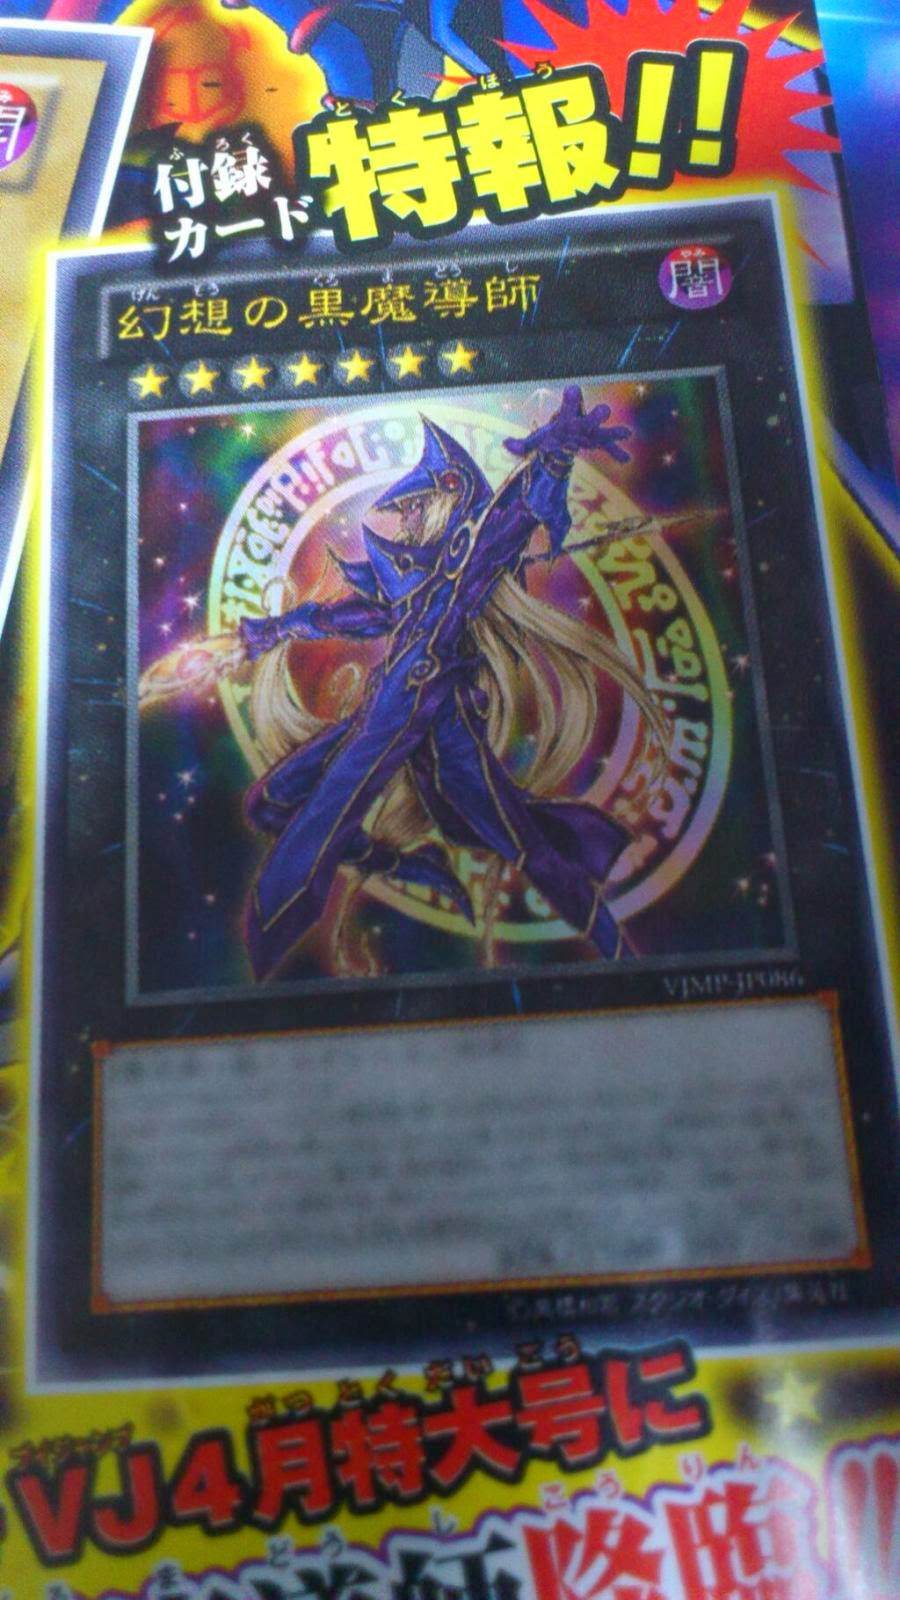 awesome card games news yugioh memories of the duel king and